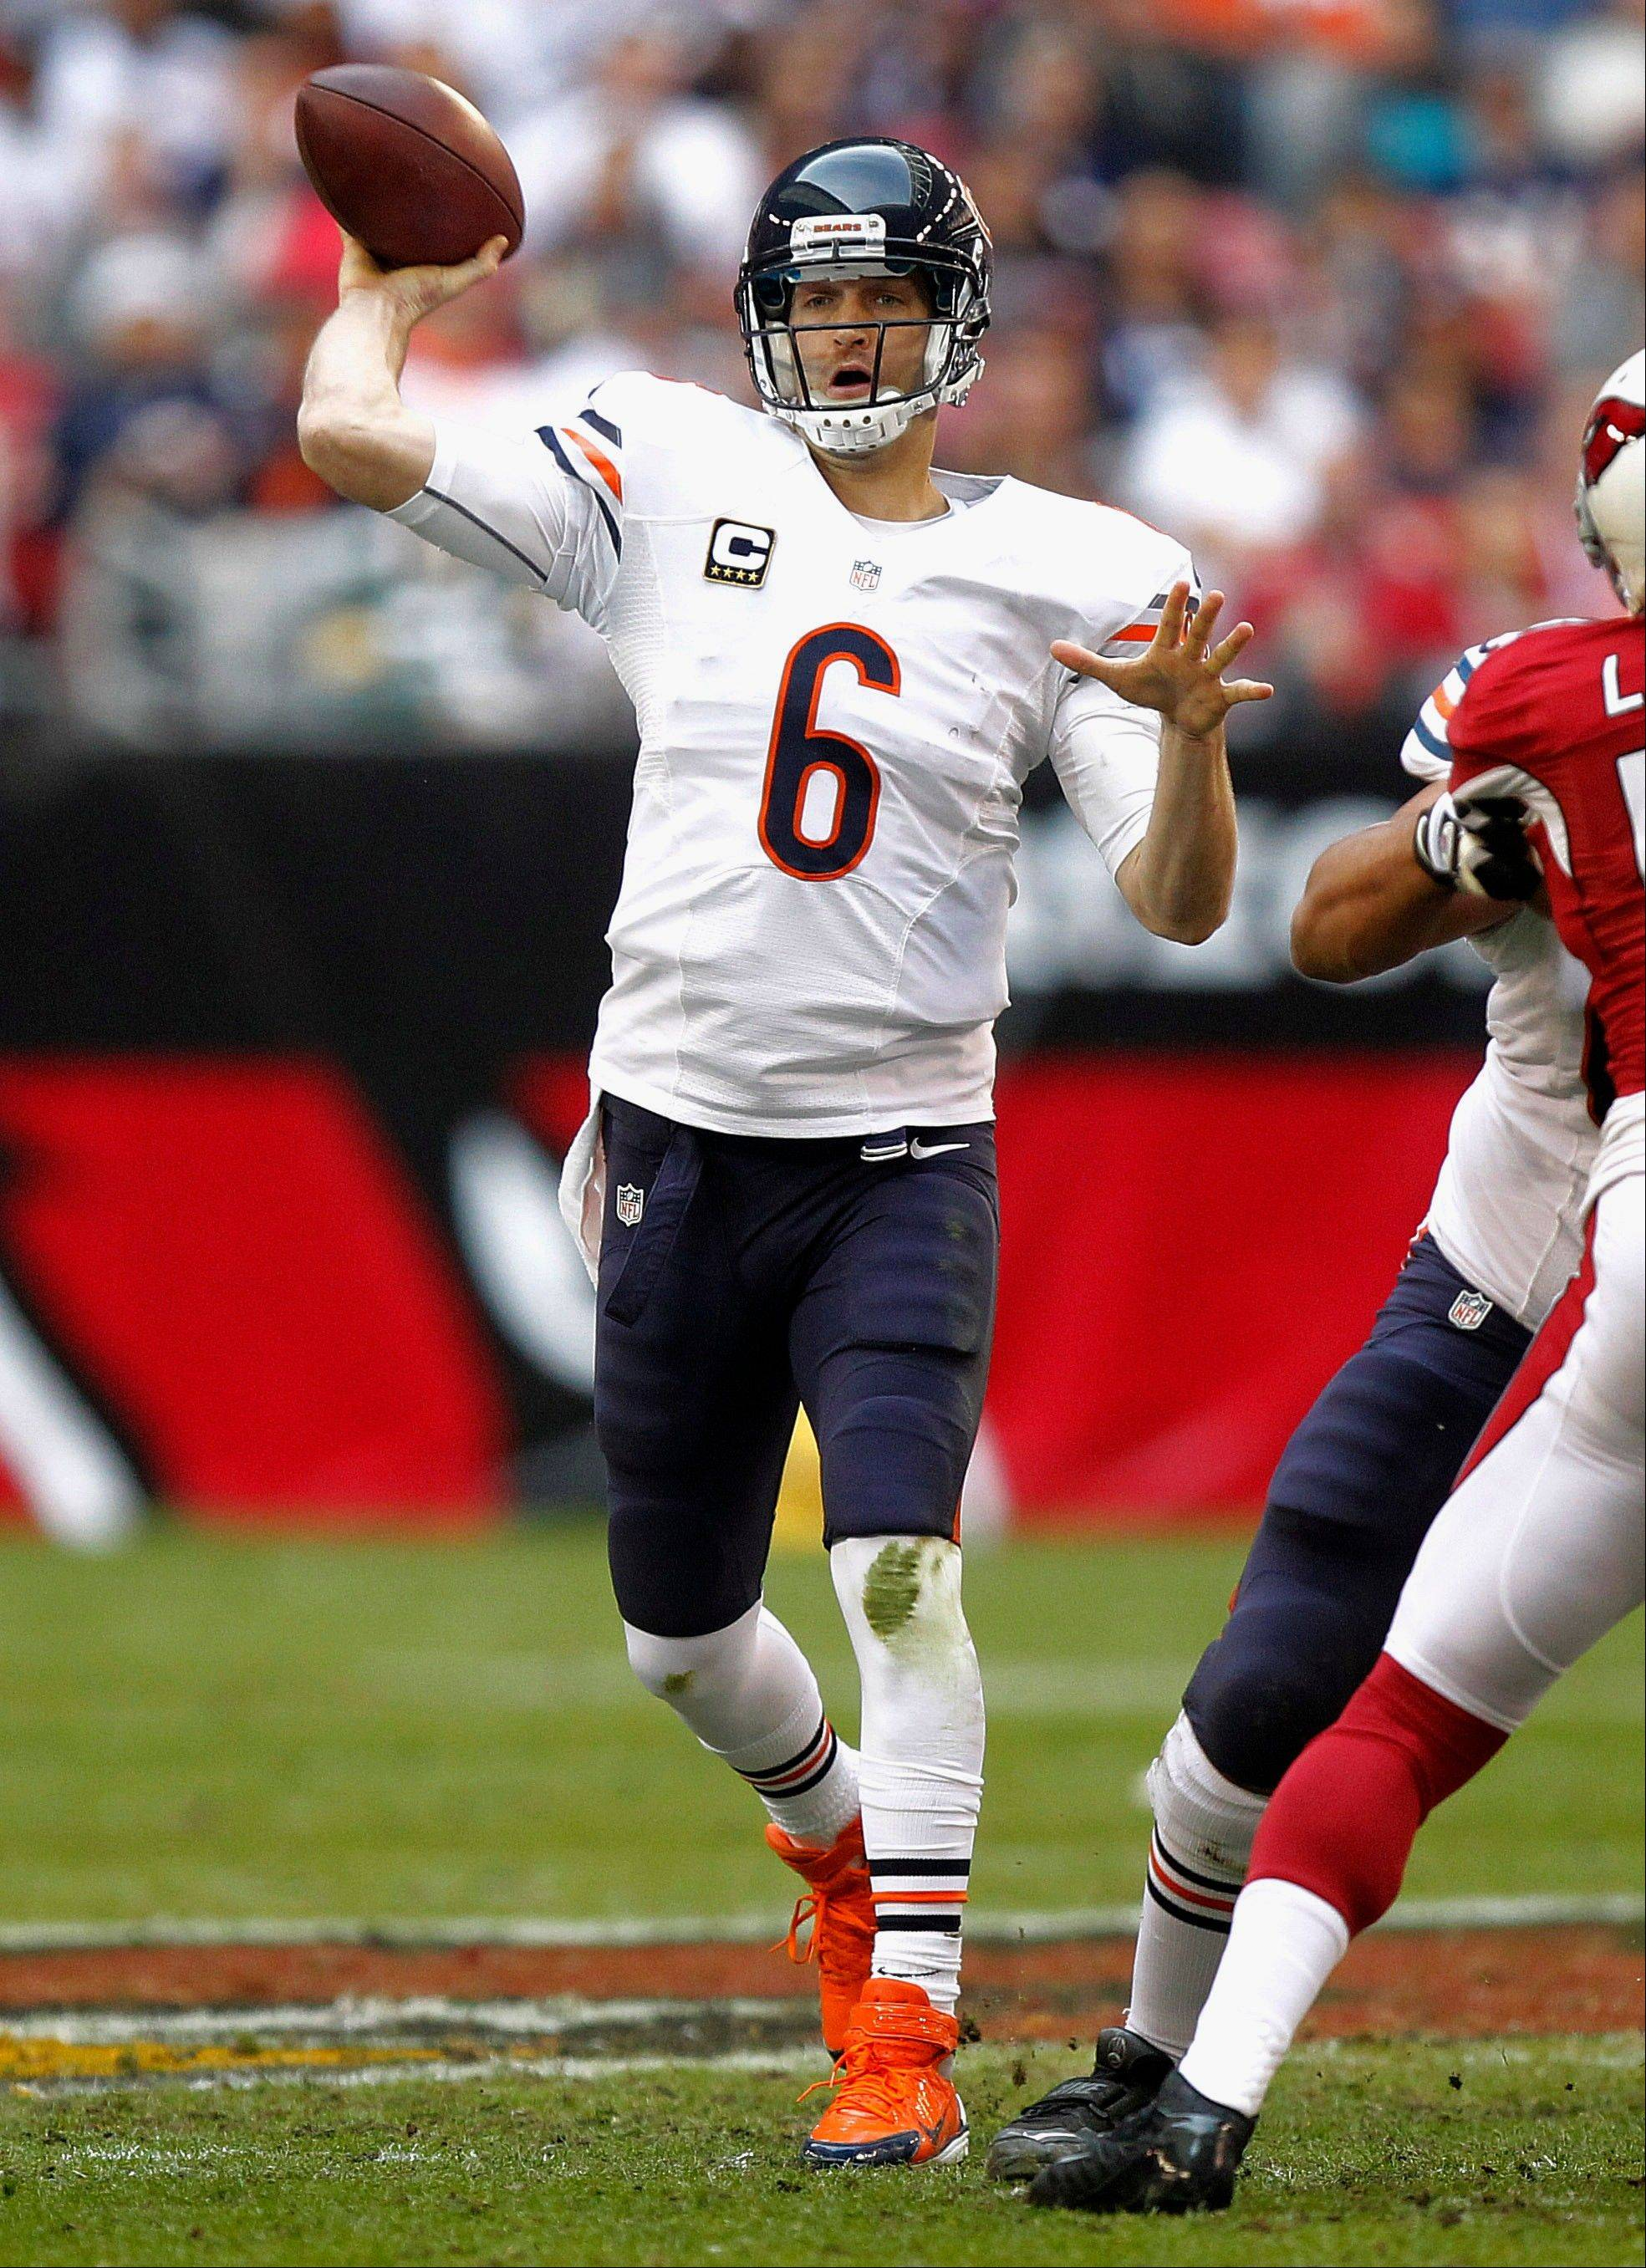 Bears quarterback Jay Cutler completed only 1 of his first 11 passes Sunday at Arizona. He finished with a passer rating of 76.8, the third straight game he was under 80.